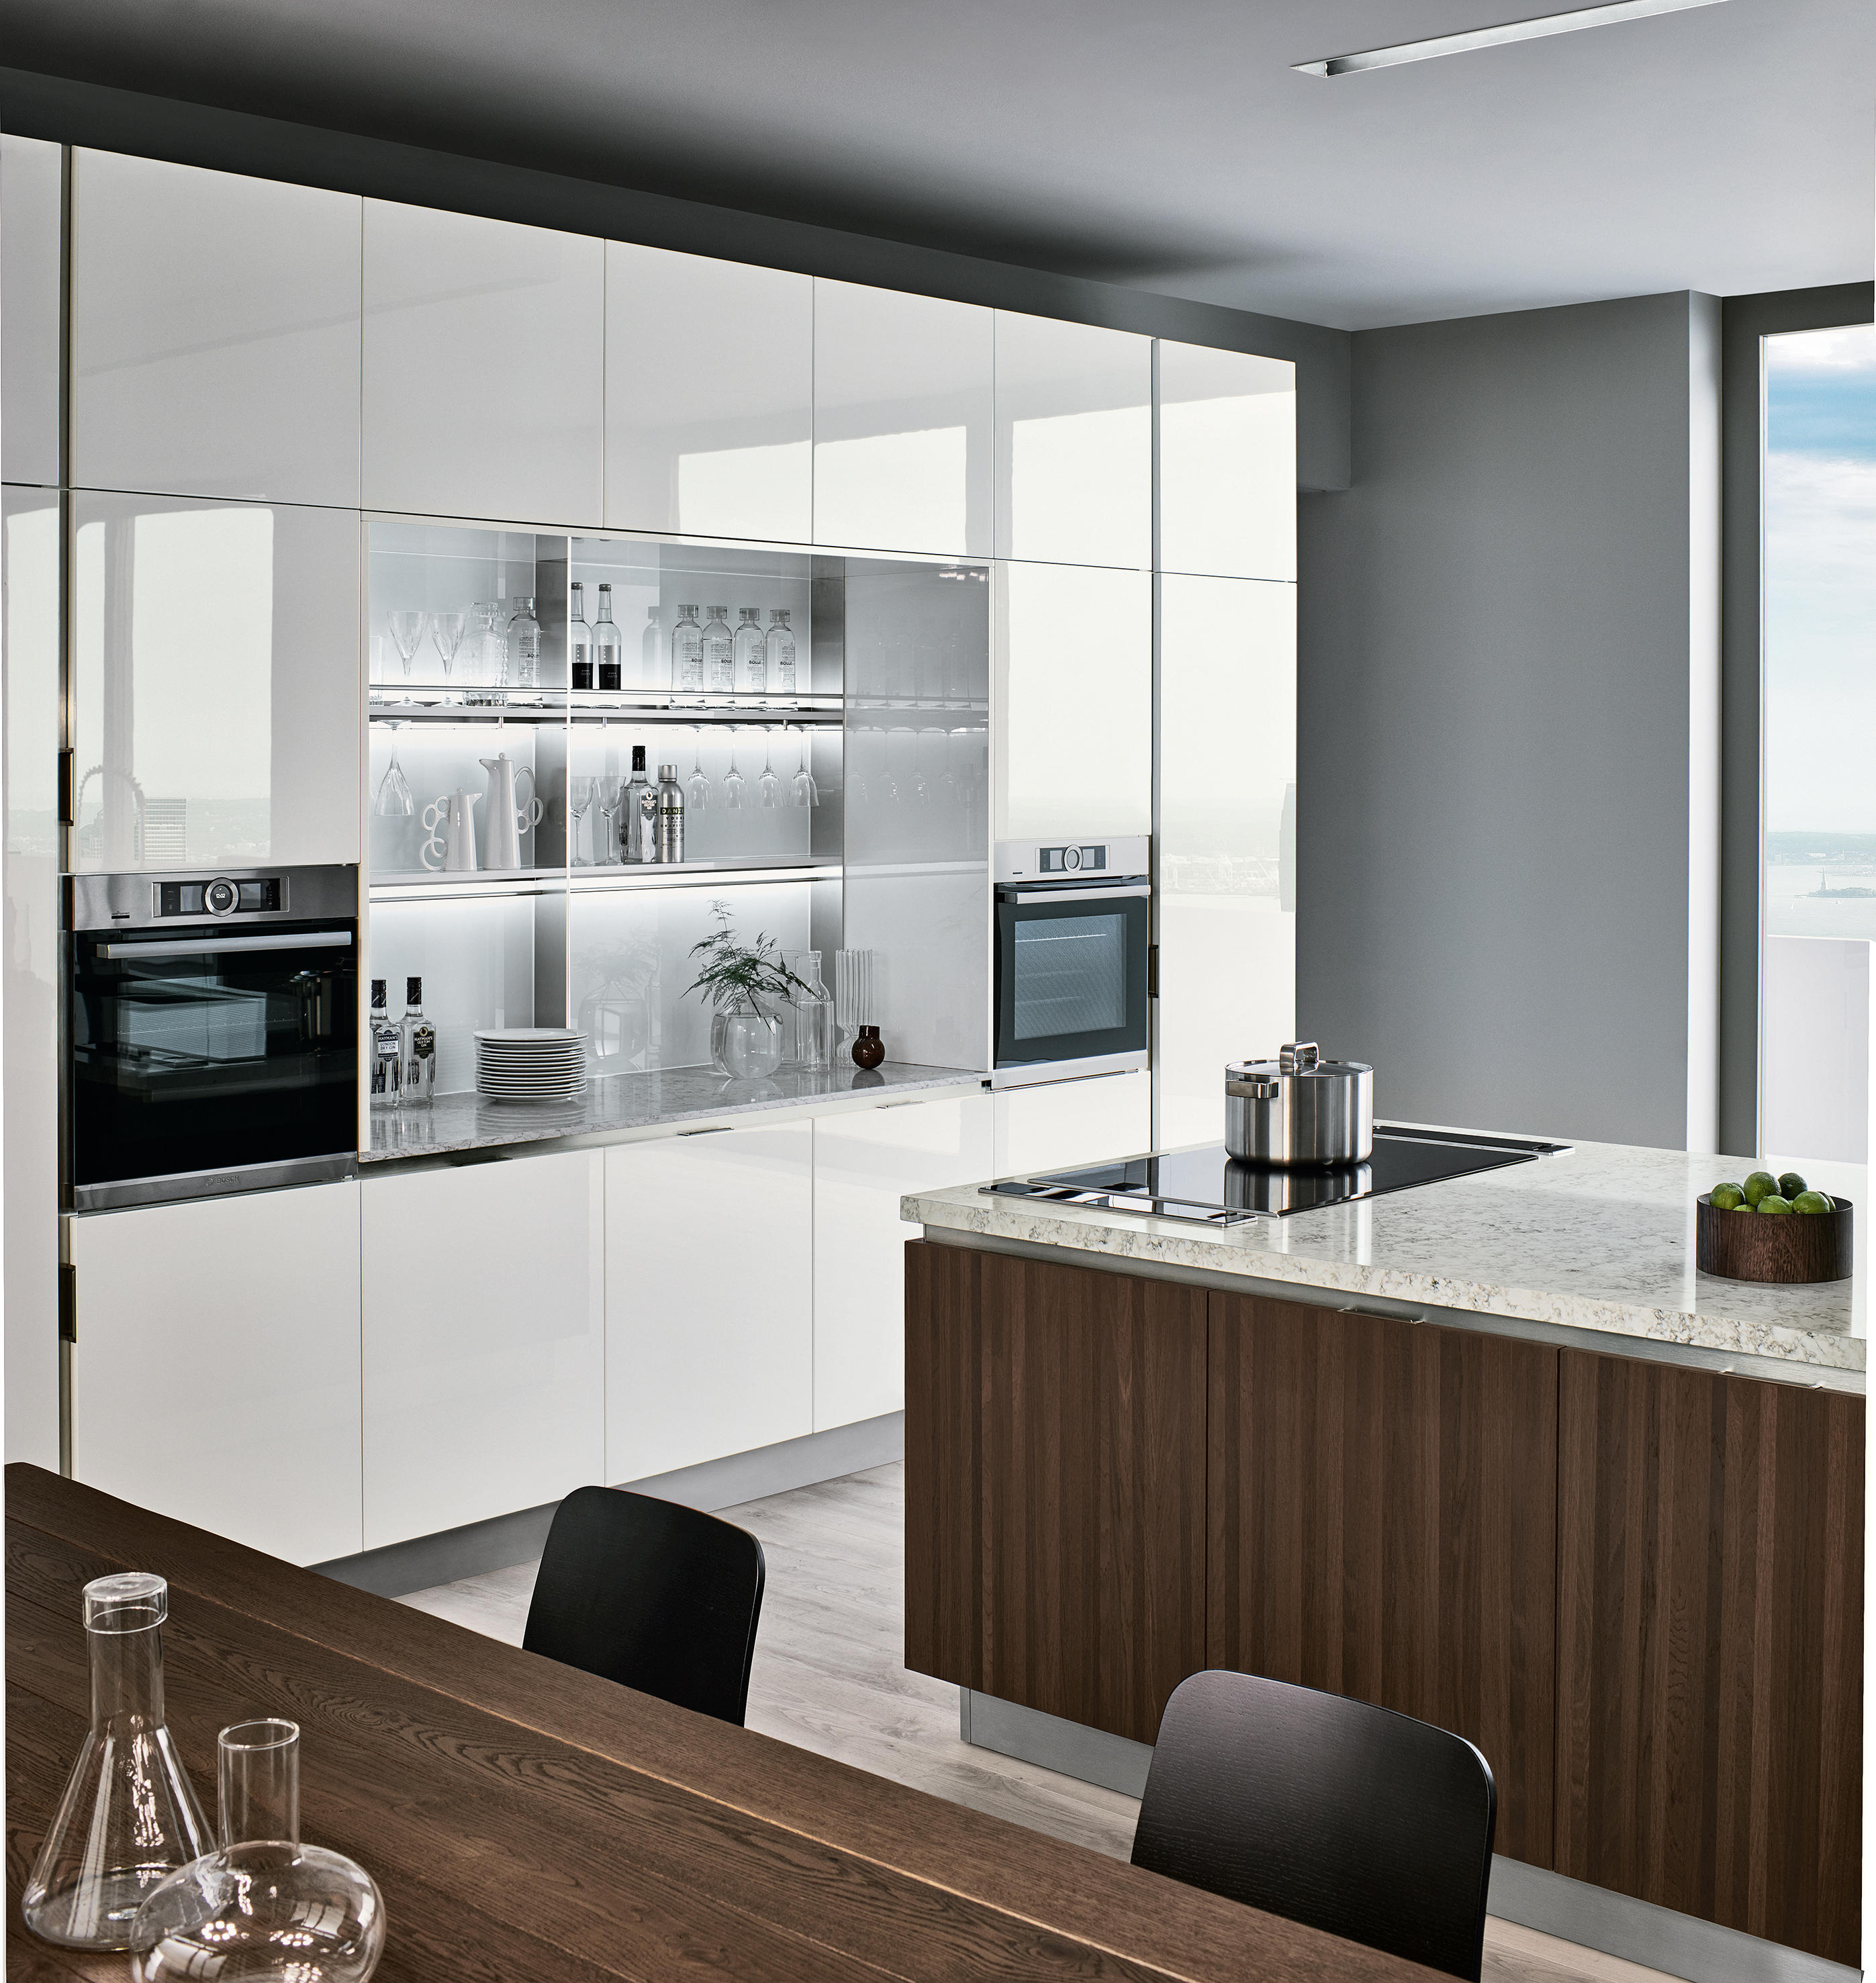 Extra Veneta Cucine.Extra Go Fitted Kitchens From Veneta Cucine Architonic